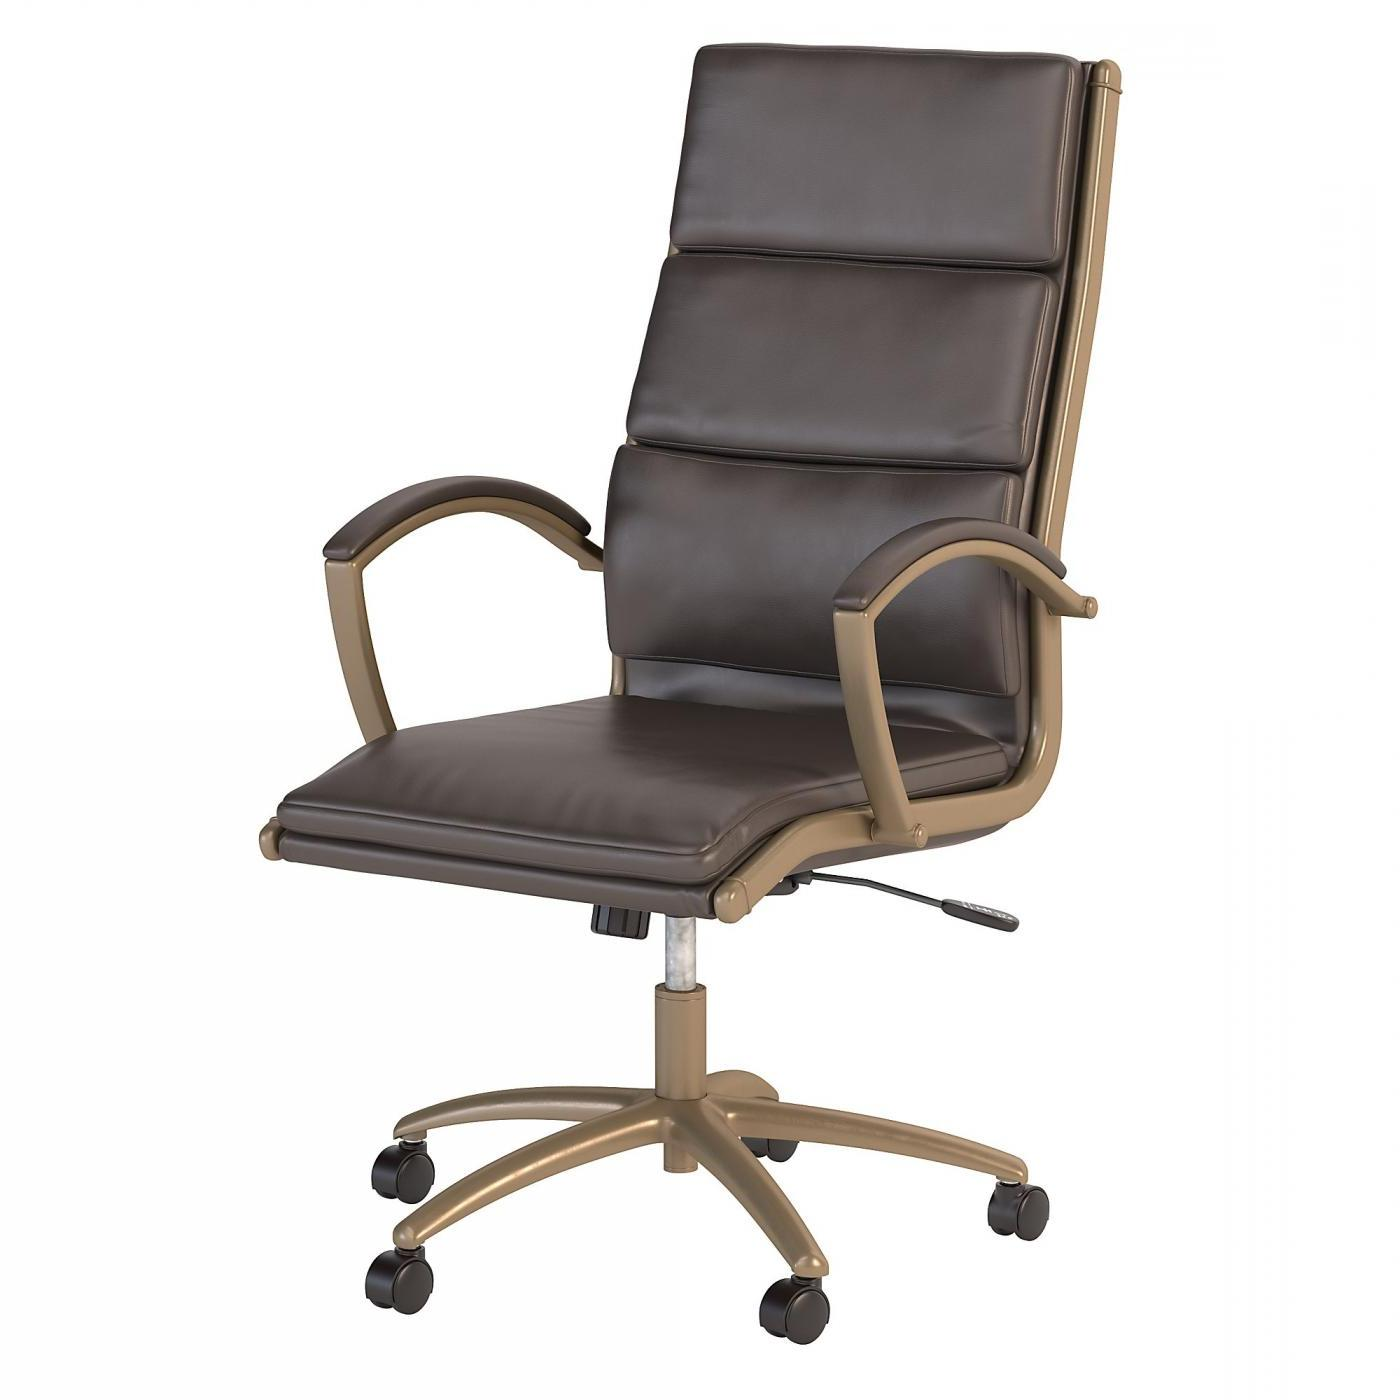 BUSH BUSINESS FURNITURE MODELO HIGH BACK LEATHER EXECUTIVE OFFICE CHAIR #EH-CH1701LBL-03. FREE SHIPPING: